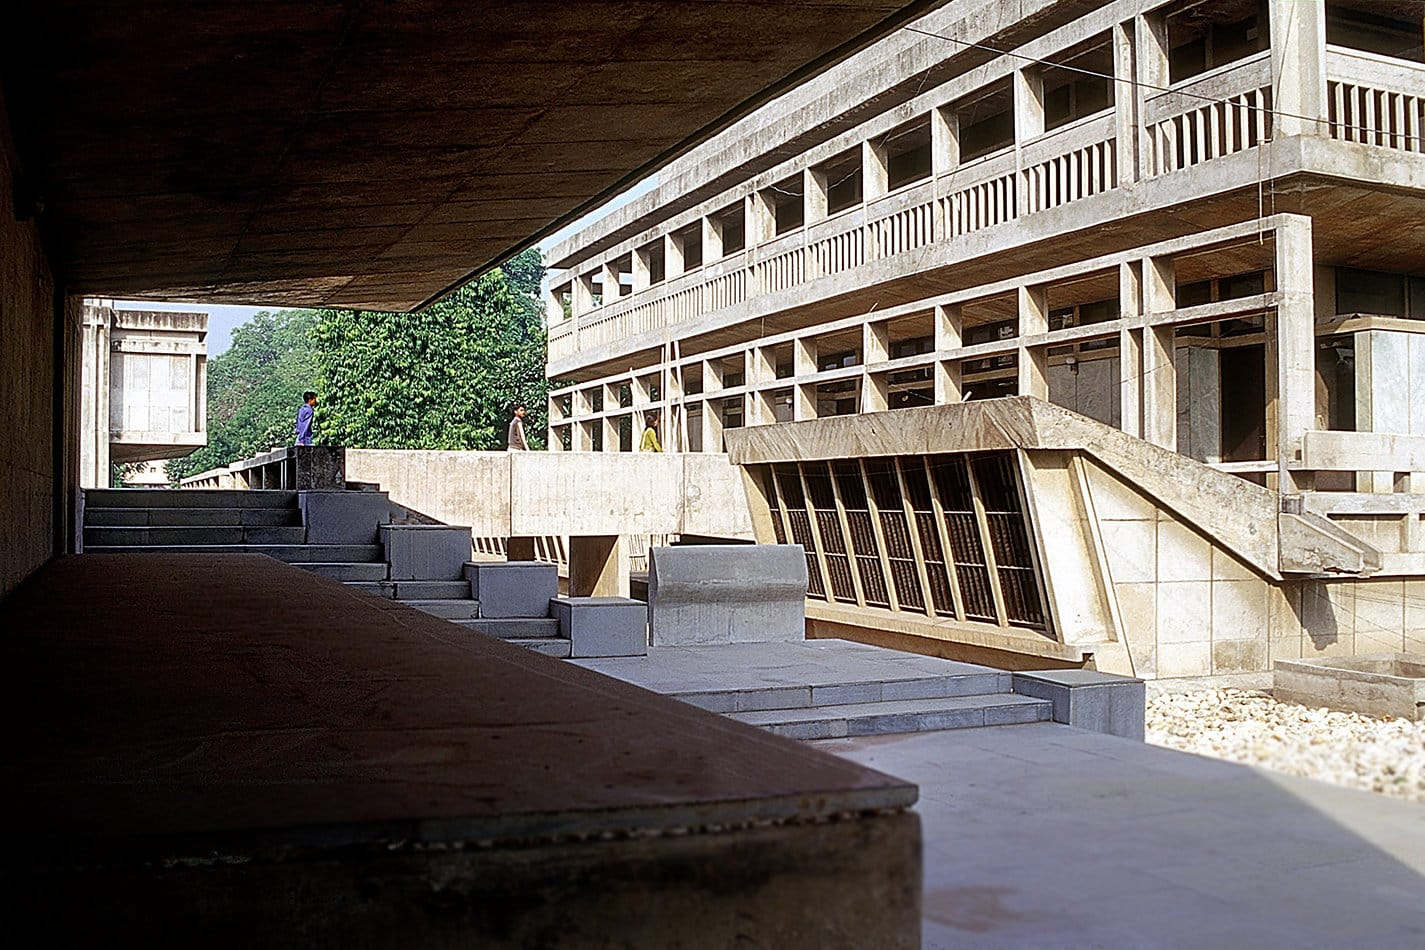 Doshi created Ahmedabad's Institute of Indology building in 1962. Courtesy of VSF